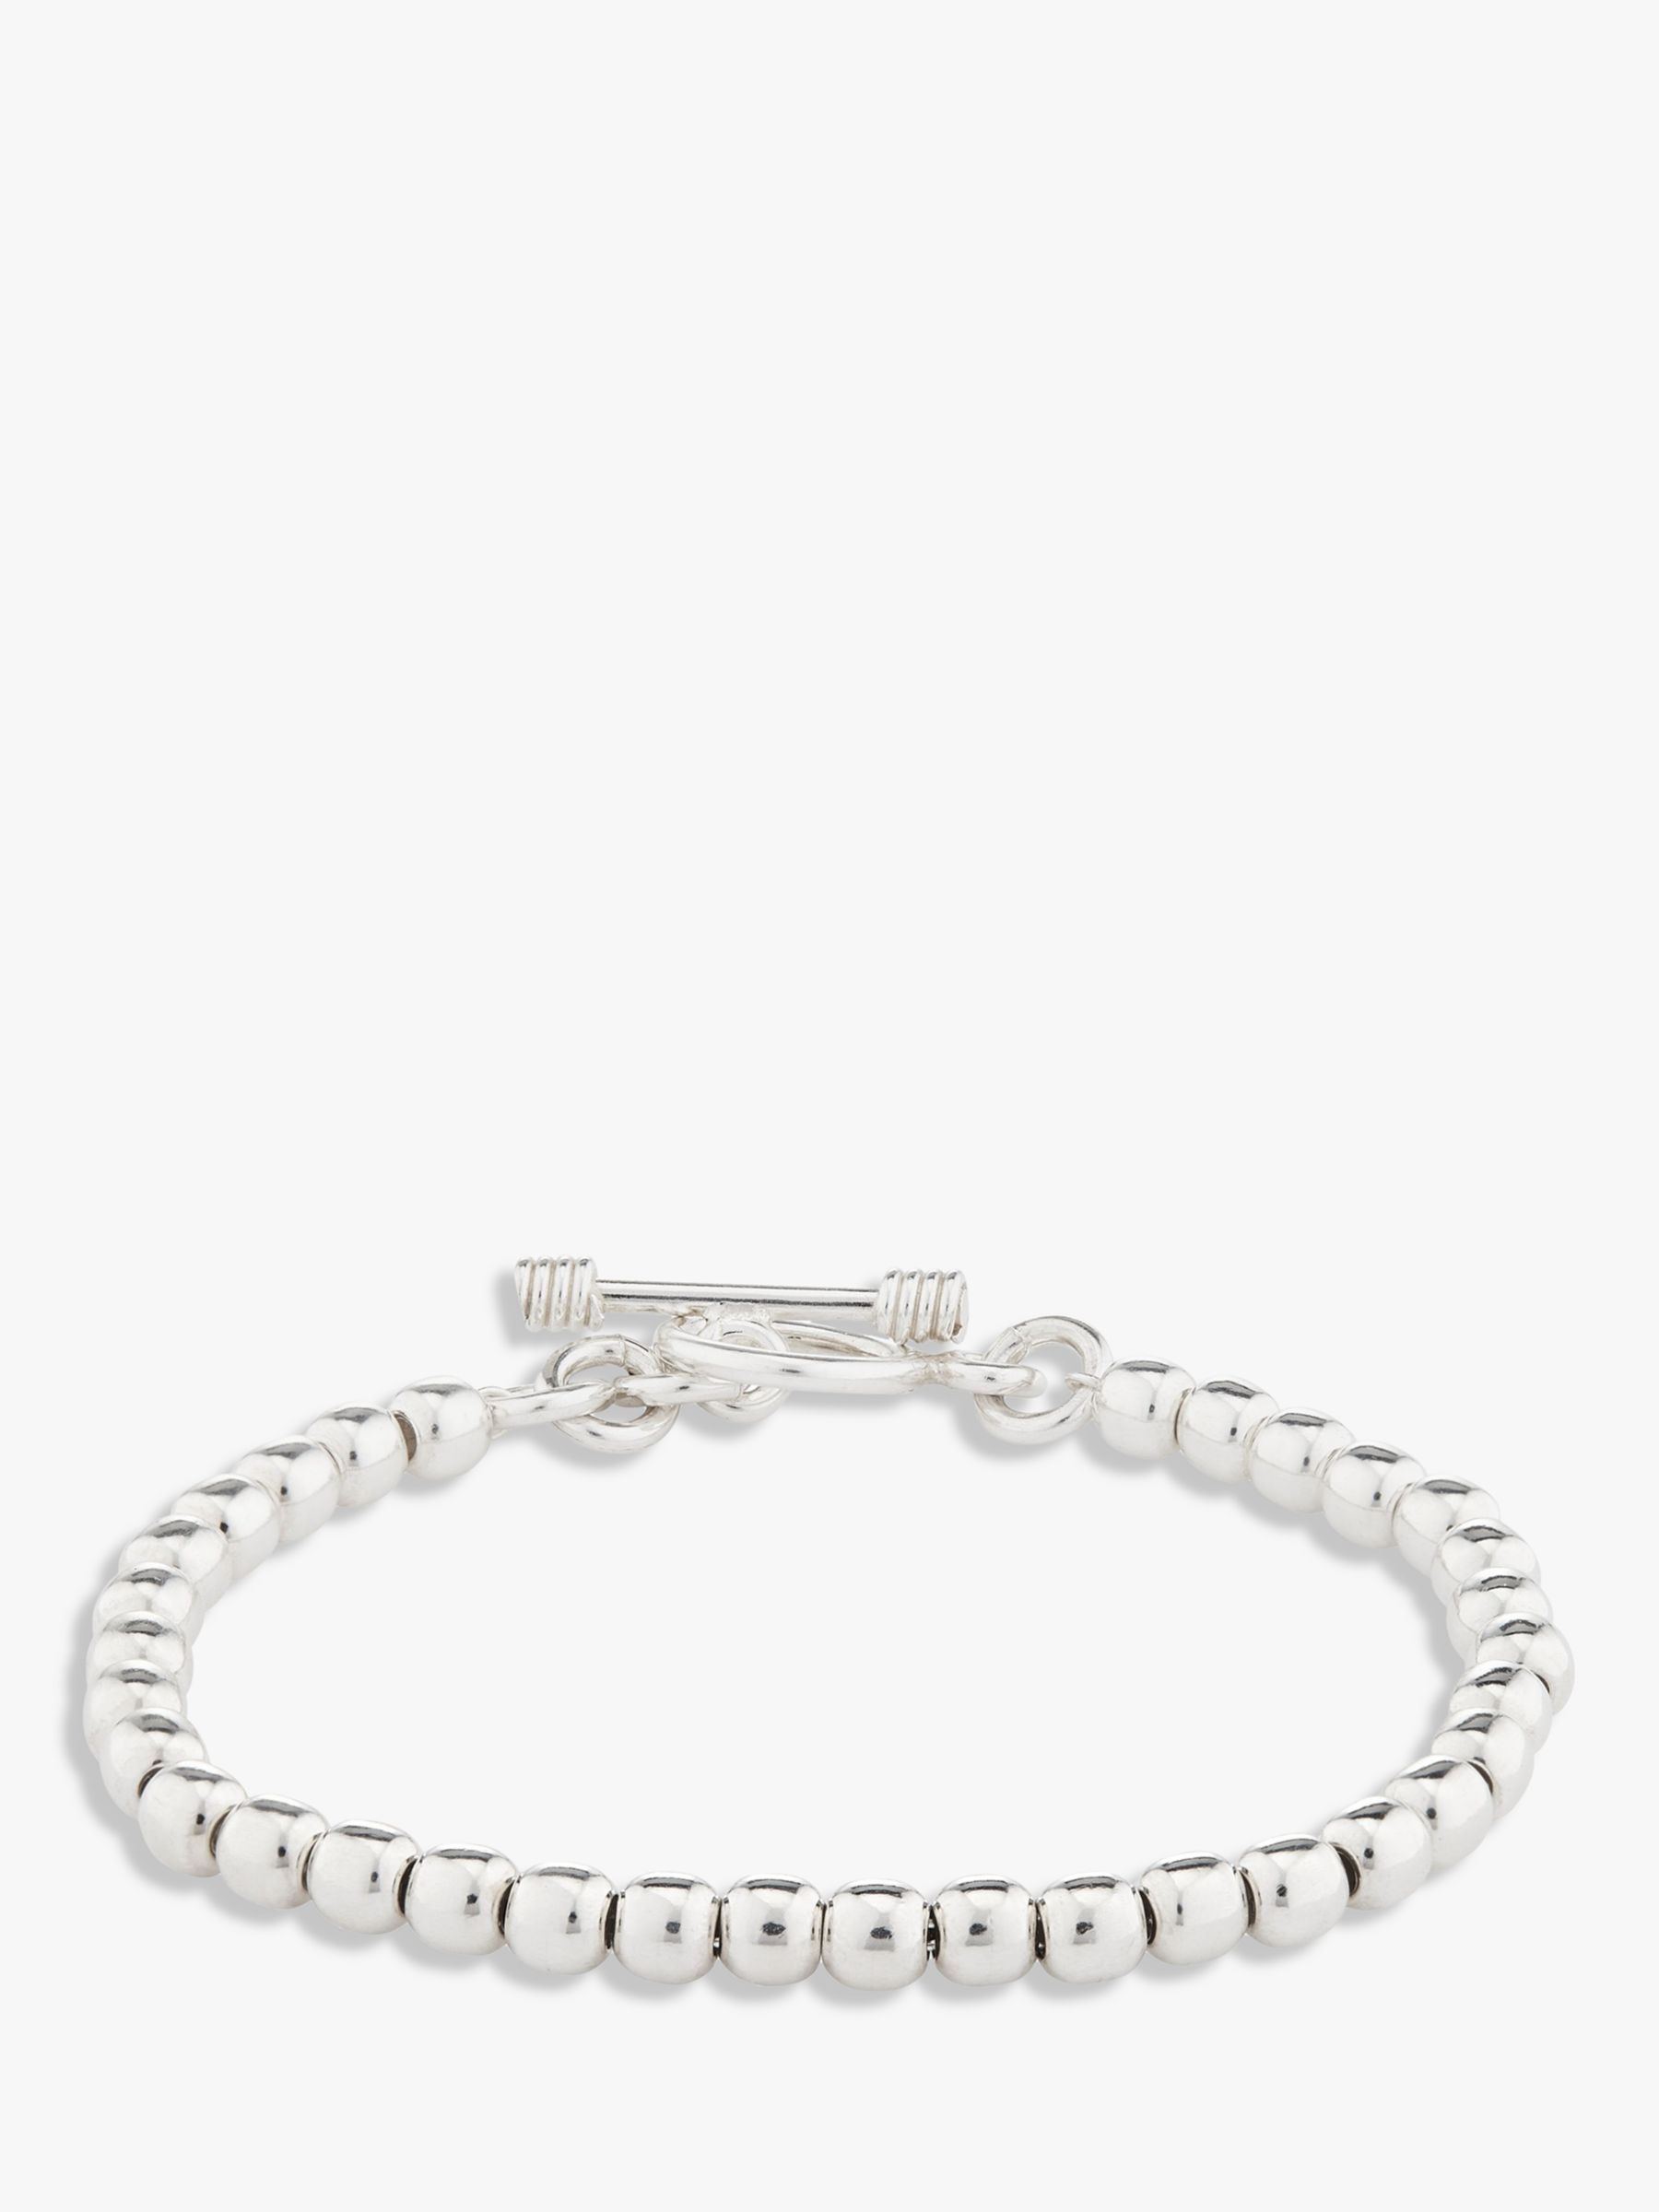 Andea Andea Sterling Silver Ball Bead Bracelet, Silver